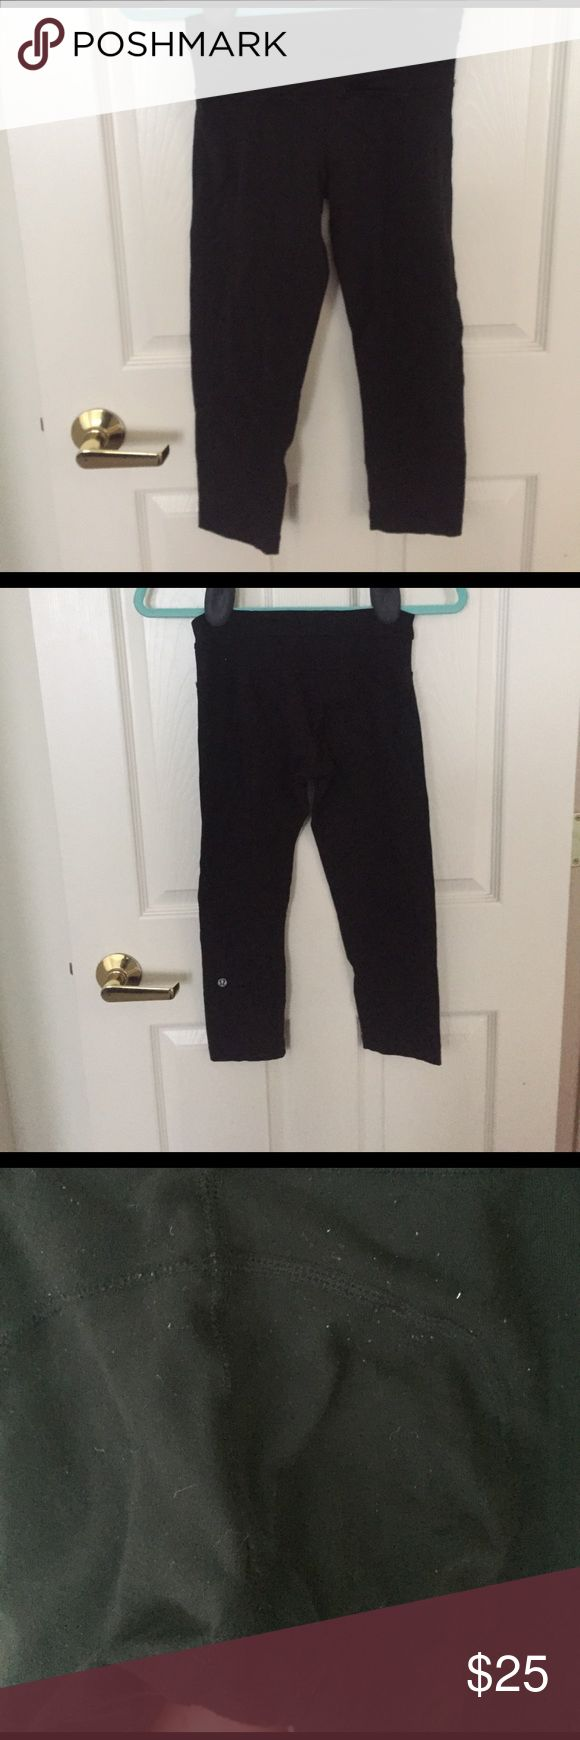 Lululemon crop leggings lululemon crop leggings! In good condition has pilling but no holes. Price reflects condition but still wonderful :-)! The have been nicely wash and cleaned with tide ready for another workout. They no longer fit me after having kids and are looking for a new loving home lululemon athletica Pants Skinny